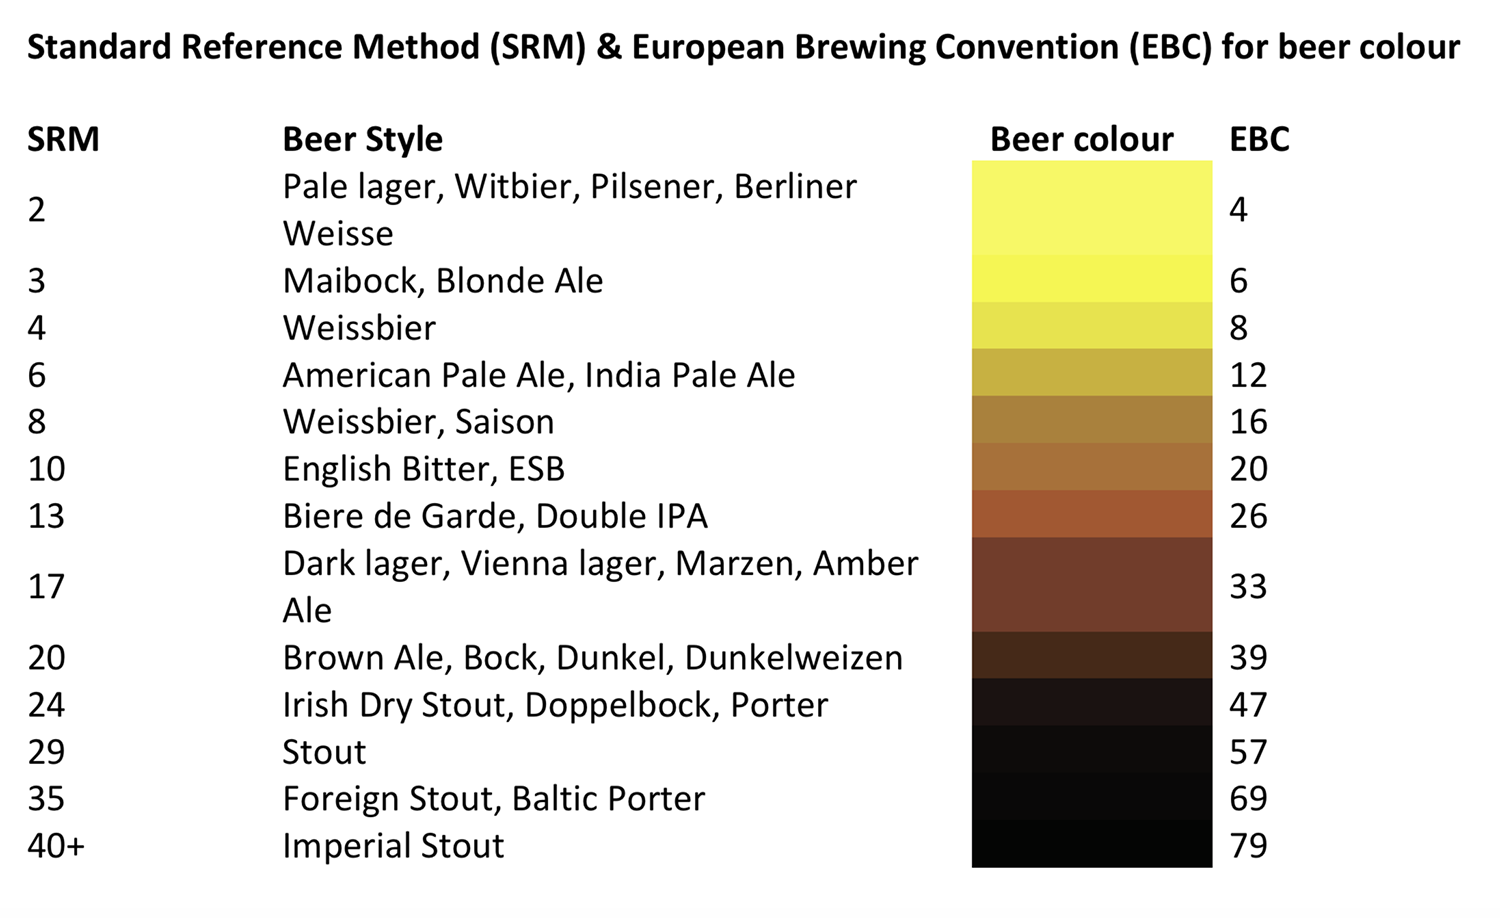 Standard Reference Method for Beer Colour 2019 Red Lion Kegworth 1